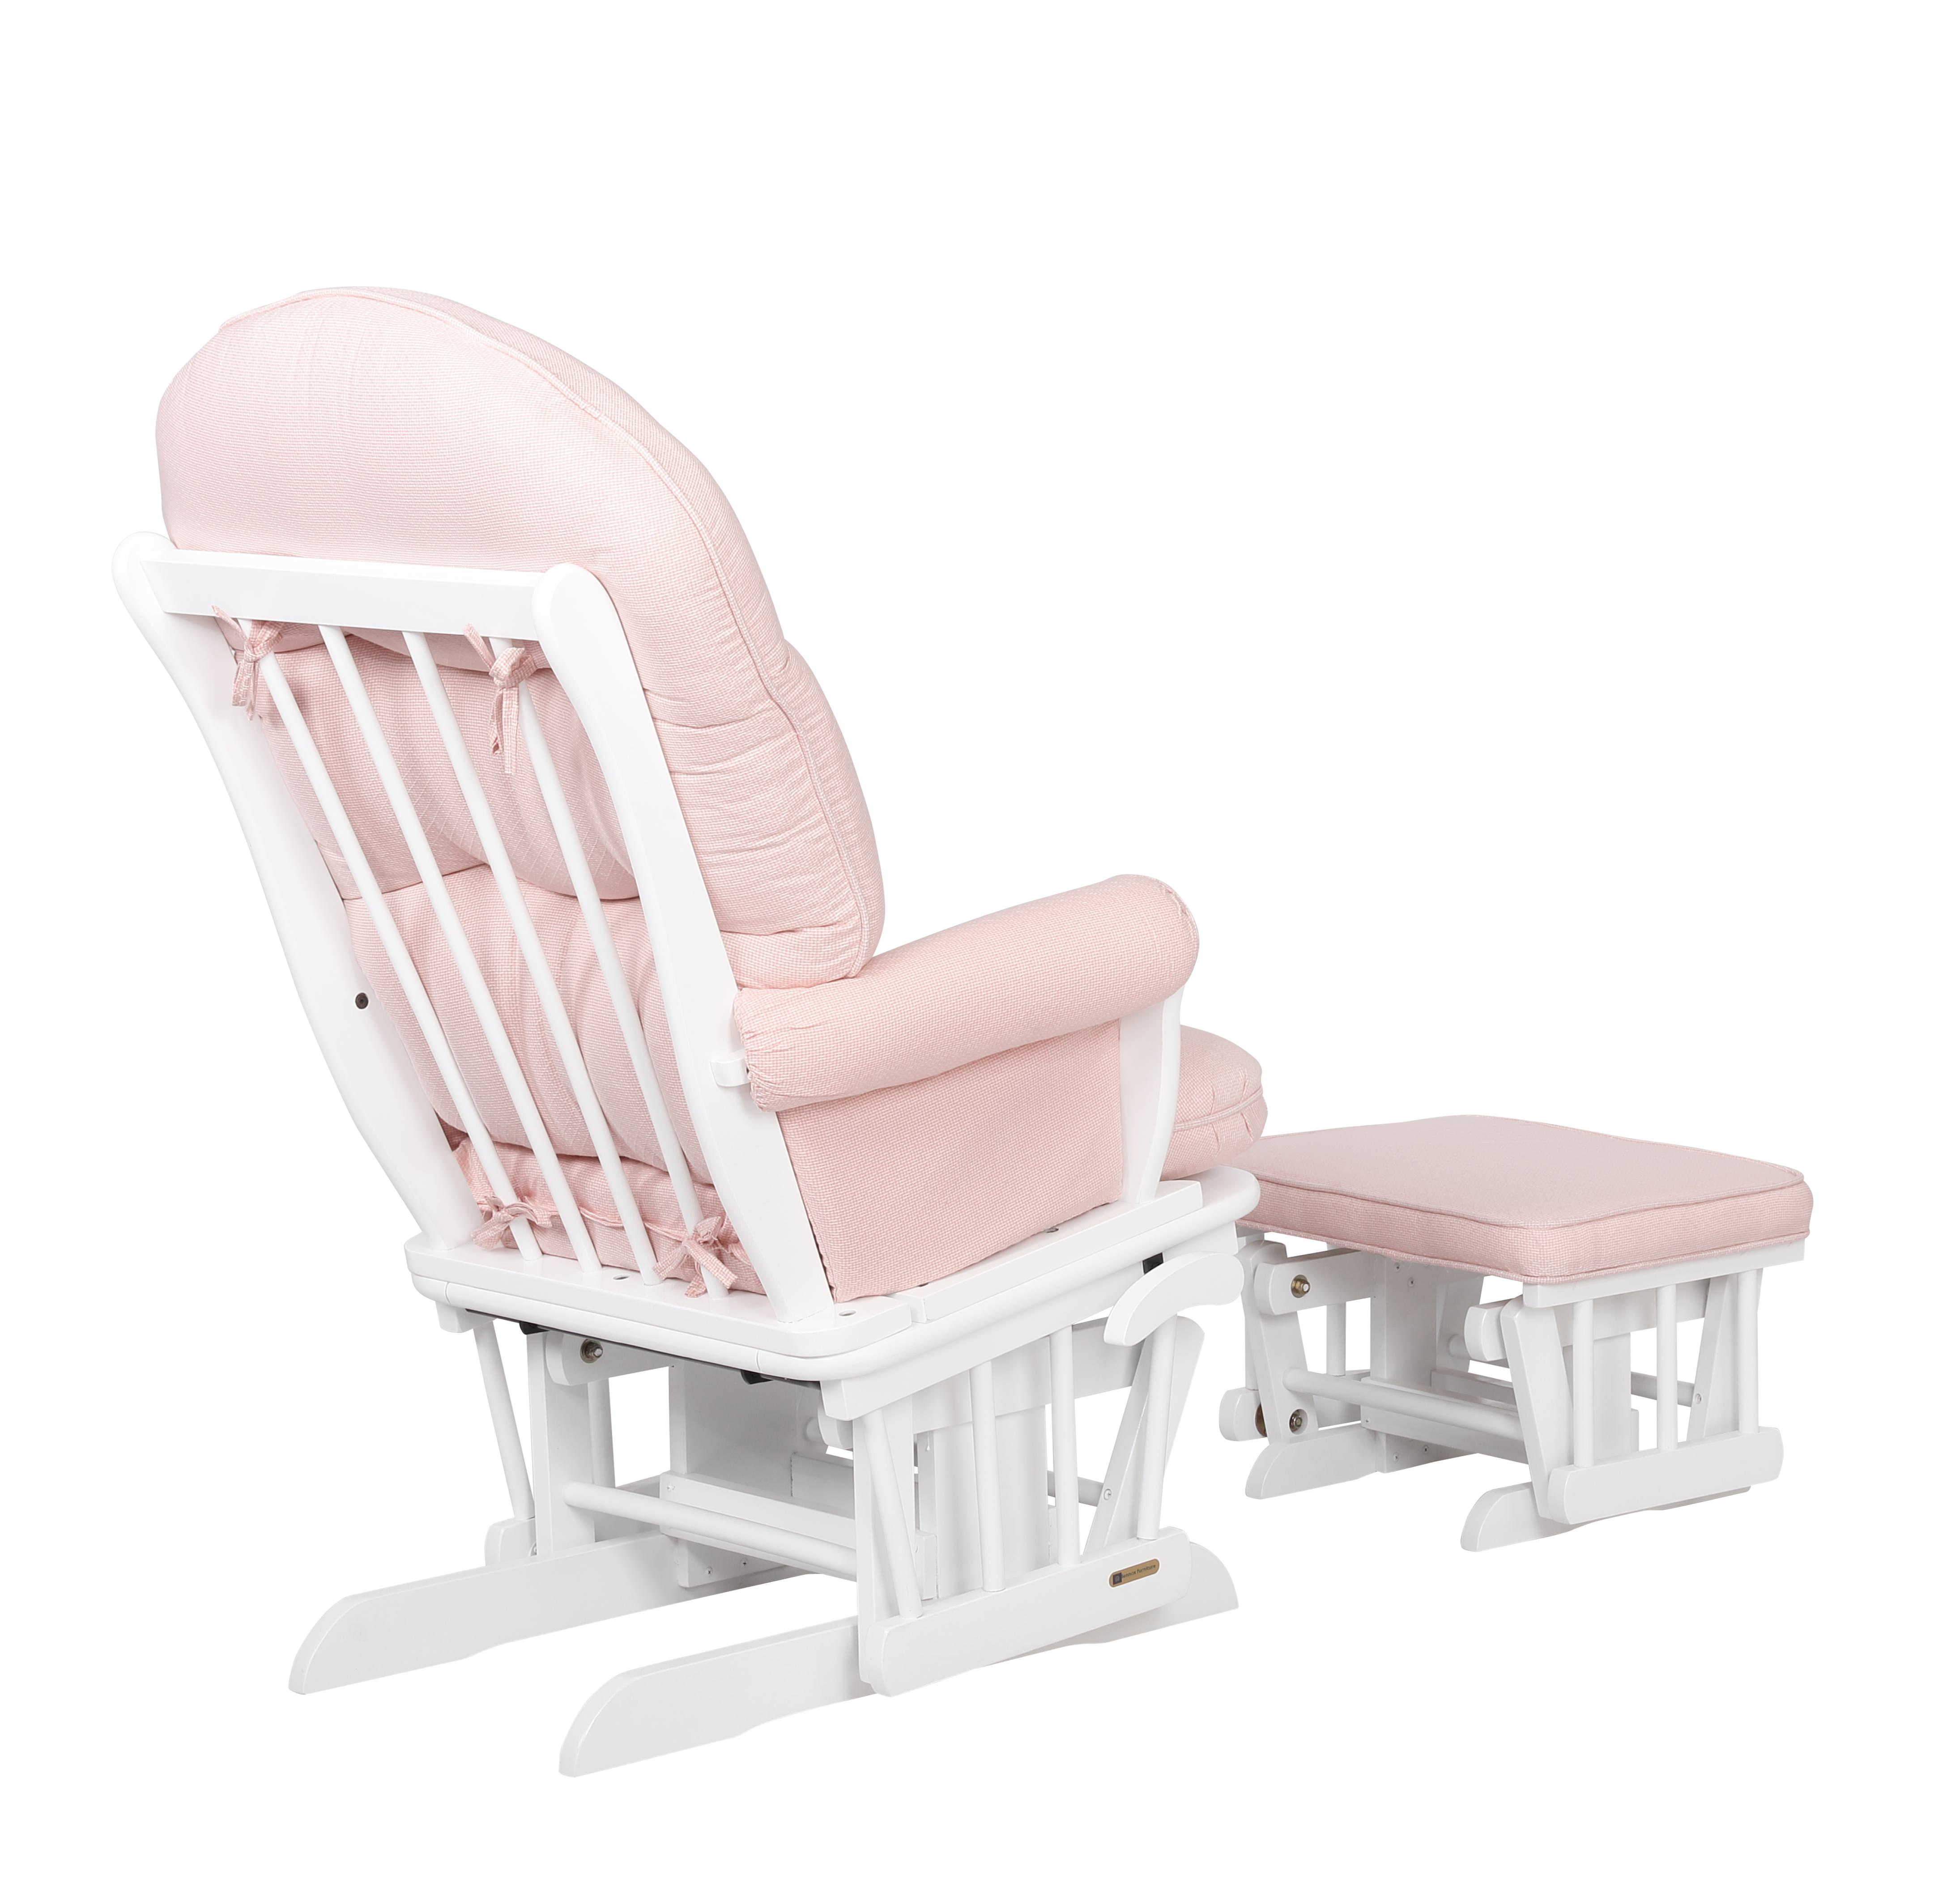 Glider Chair And Ottoman Set White Pickwick Pink Combo 7729cb 15 1015